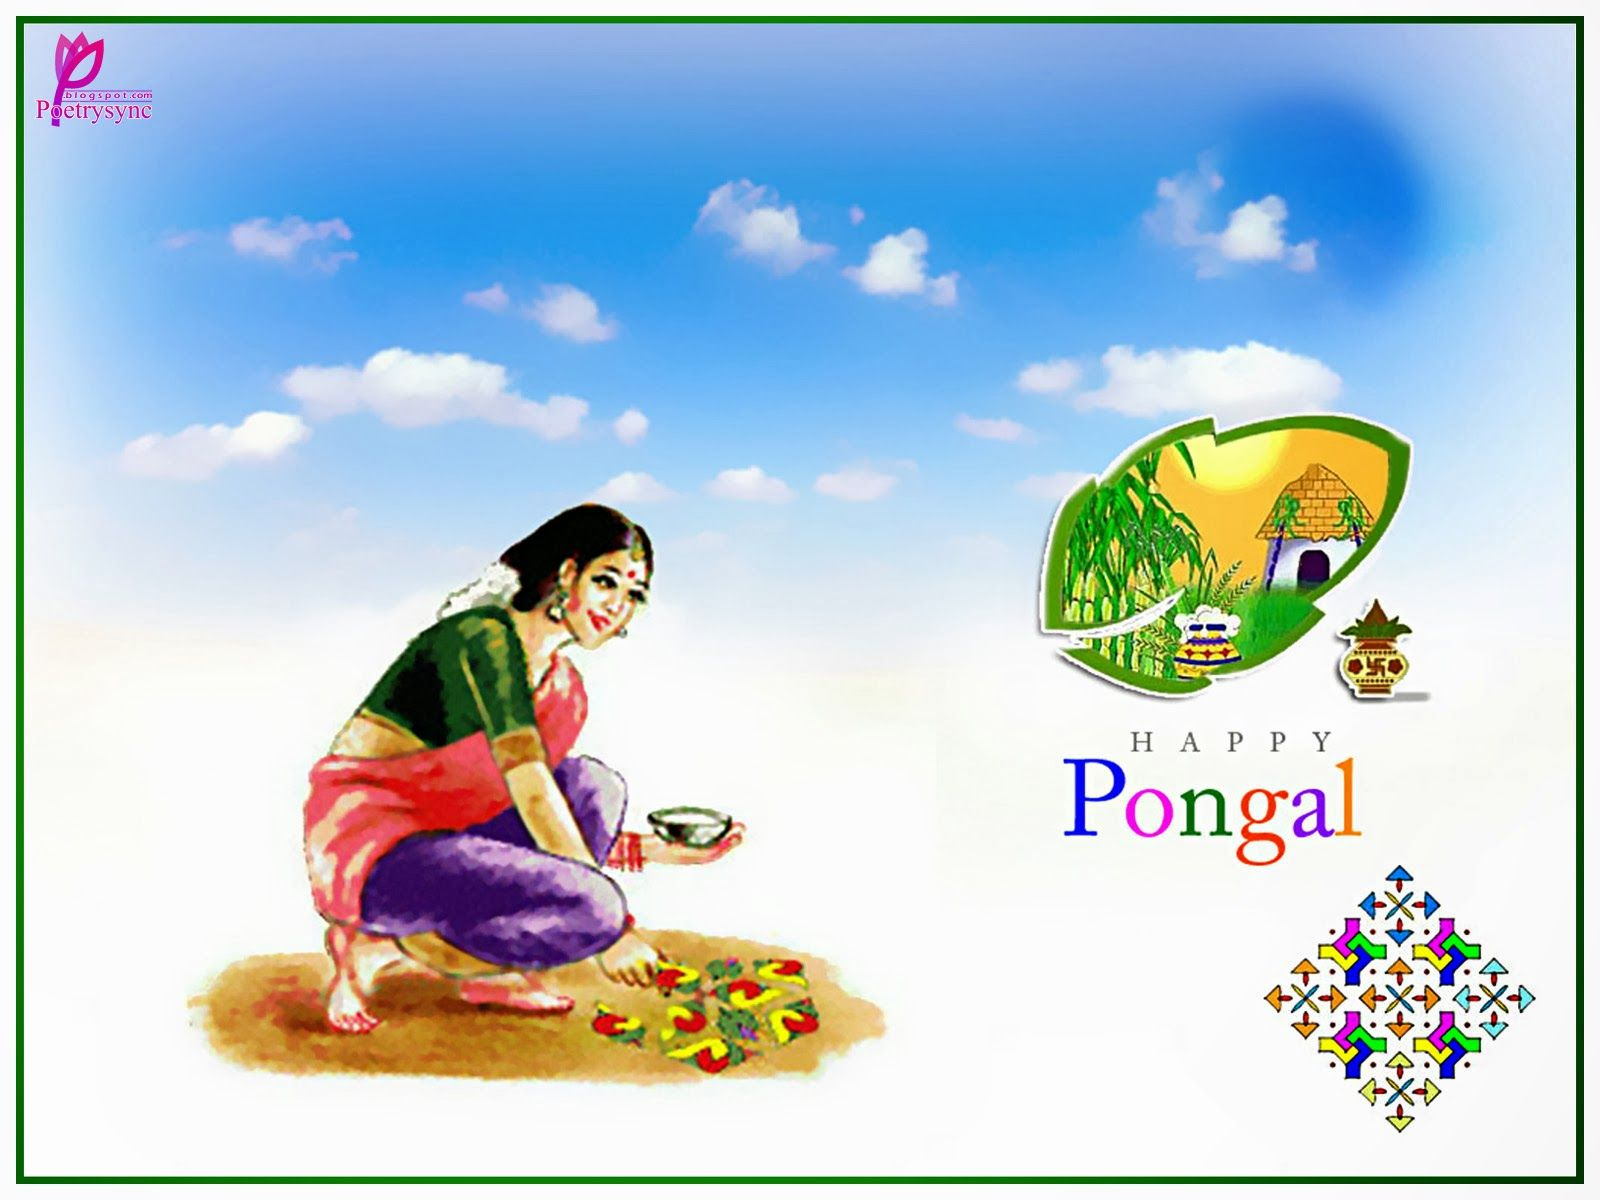 Happy pongal wishes picture in marathi pongal wishes pinterest happy pongal greeting images with wishes messages m4hsunfo